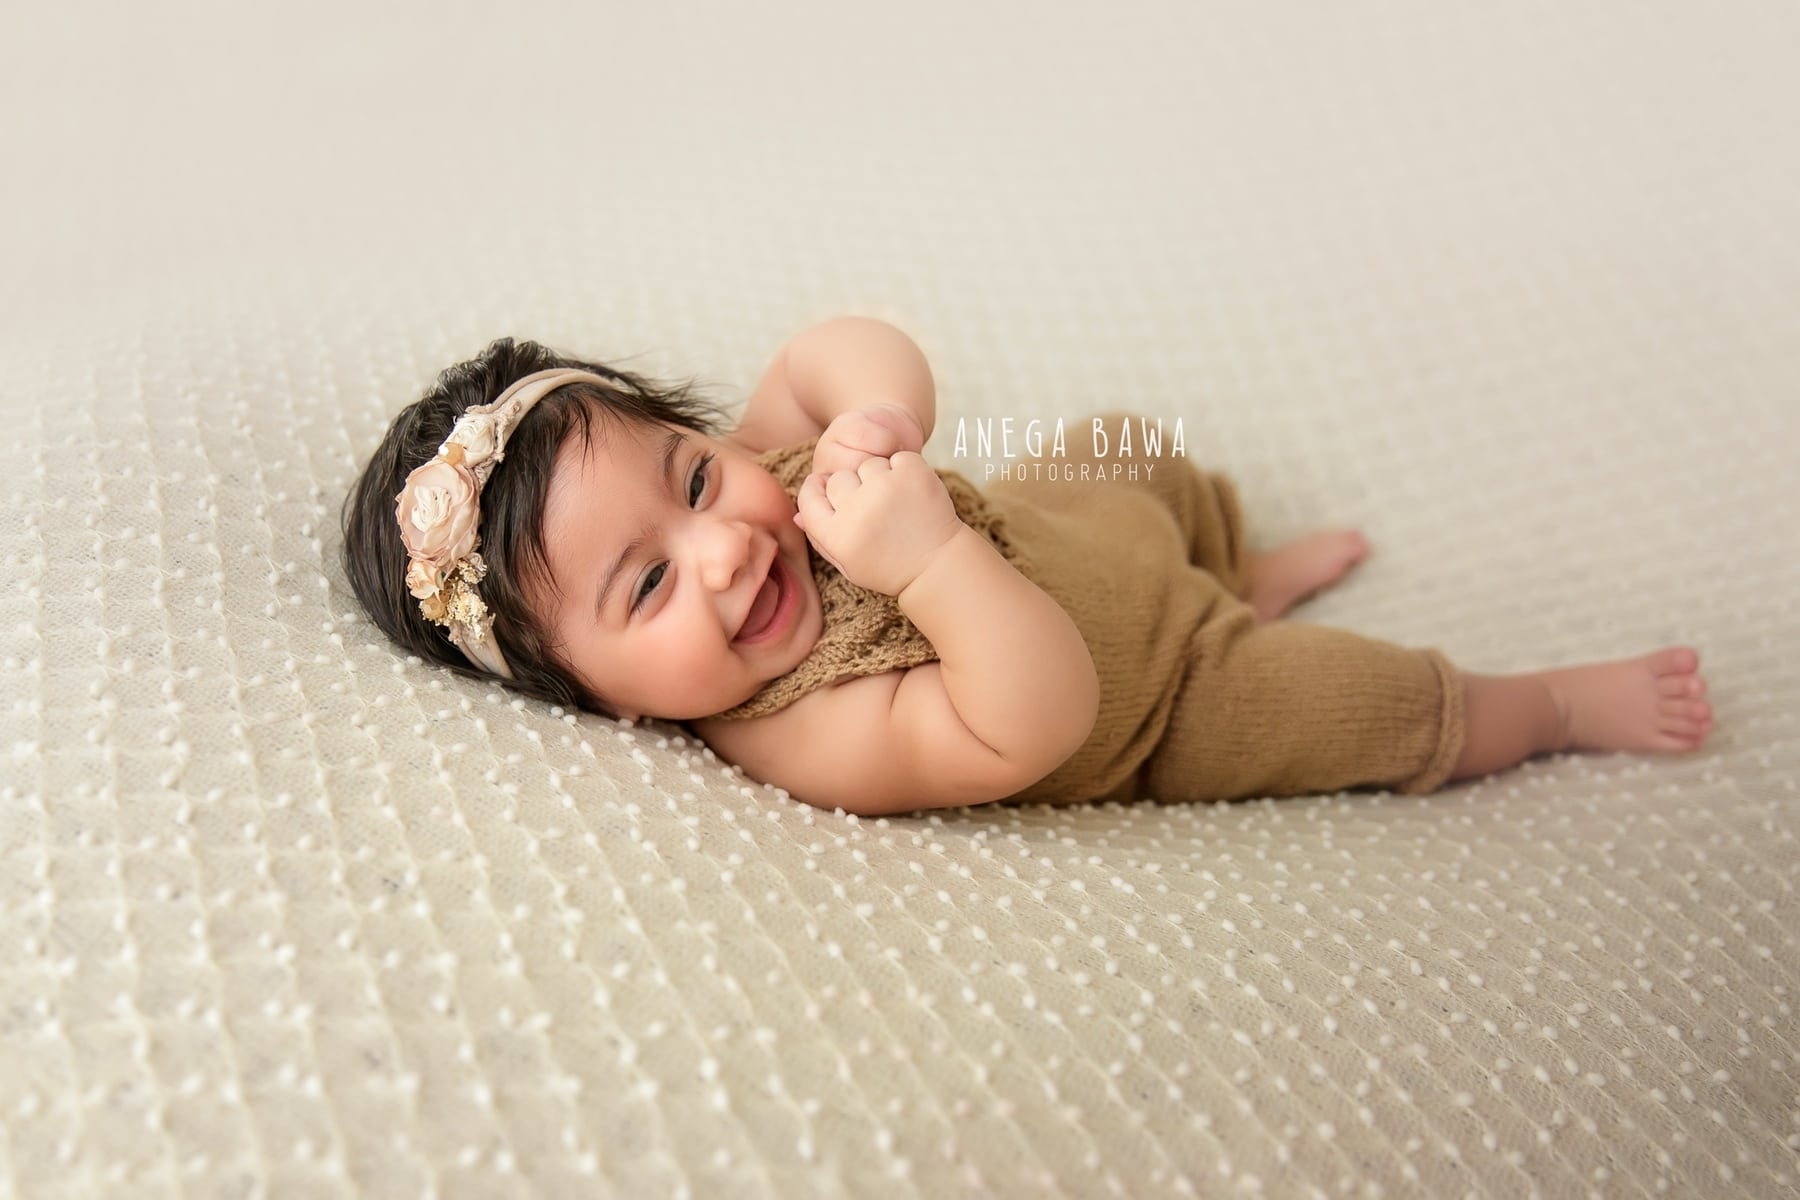 white baby photography delhi 4 months baby girl photoshoot gurgaon anega bawa